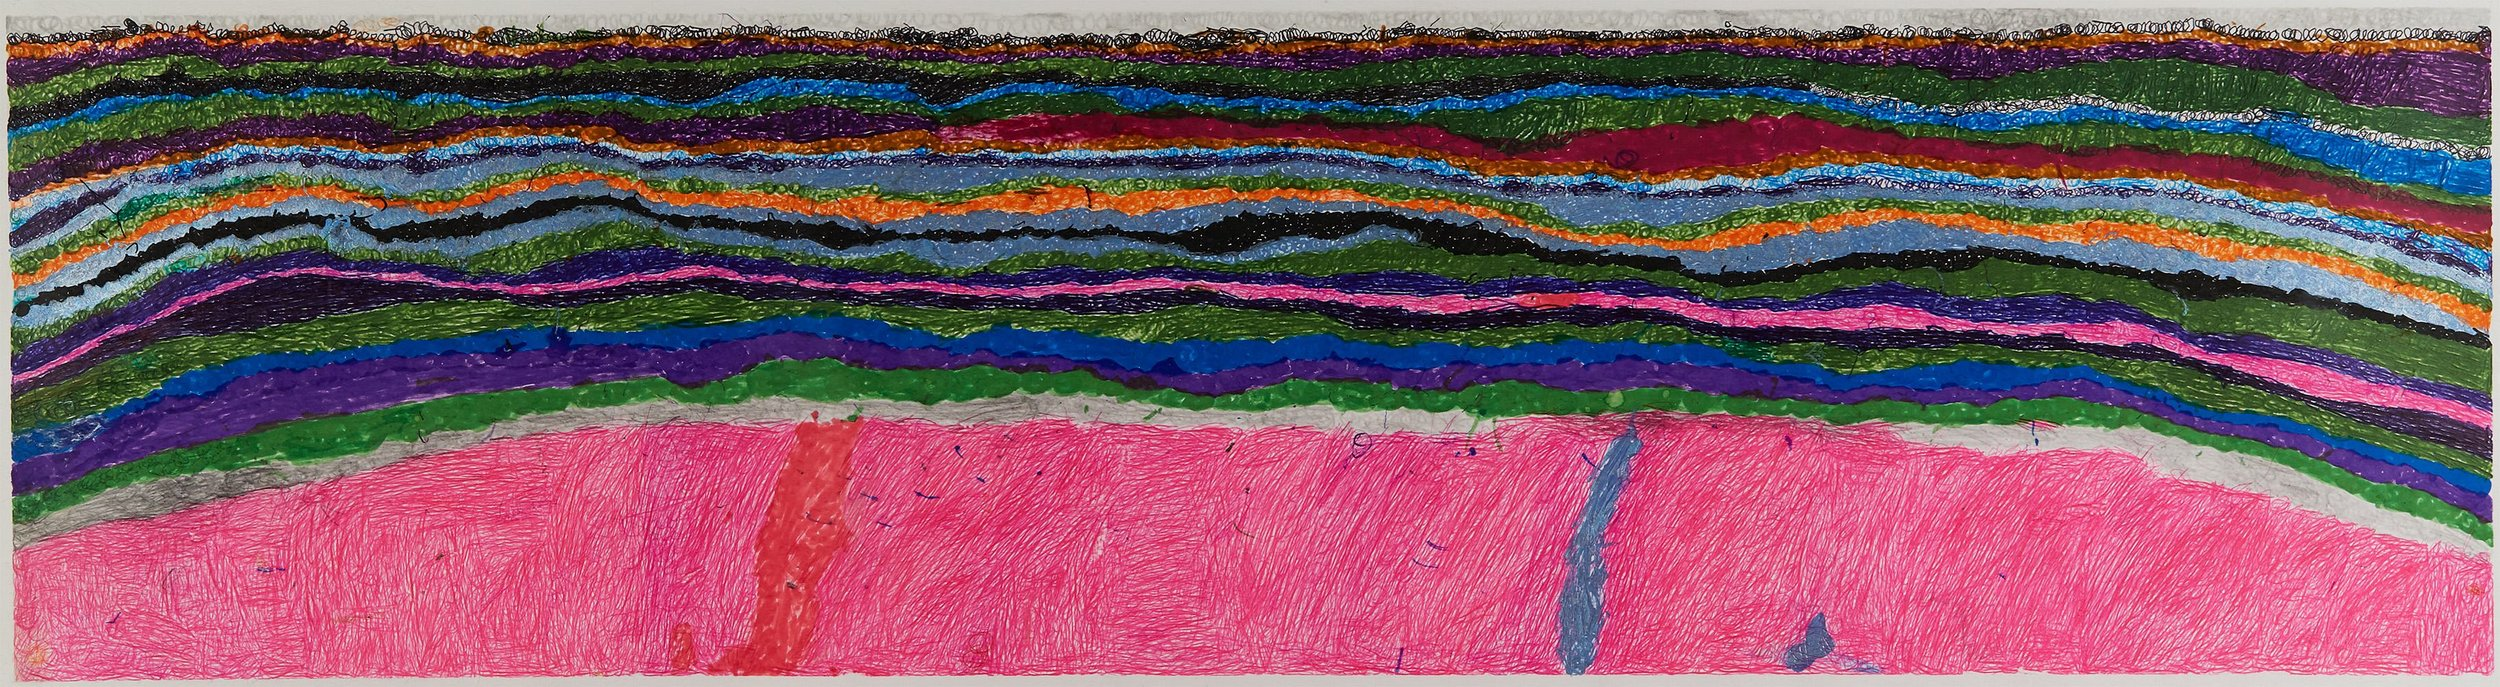 Joseph Lambert  Untitled  , 2017 Ink, marker, pencil, crayon on paper 9.45 x 33.66 inches 24 x 85.5 cm JLam 26